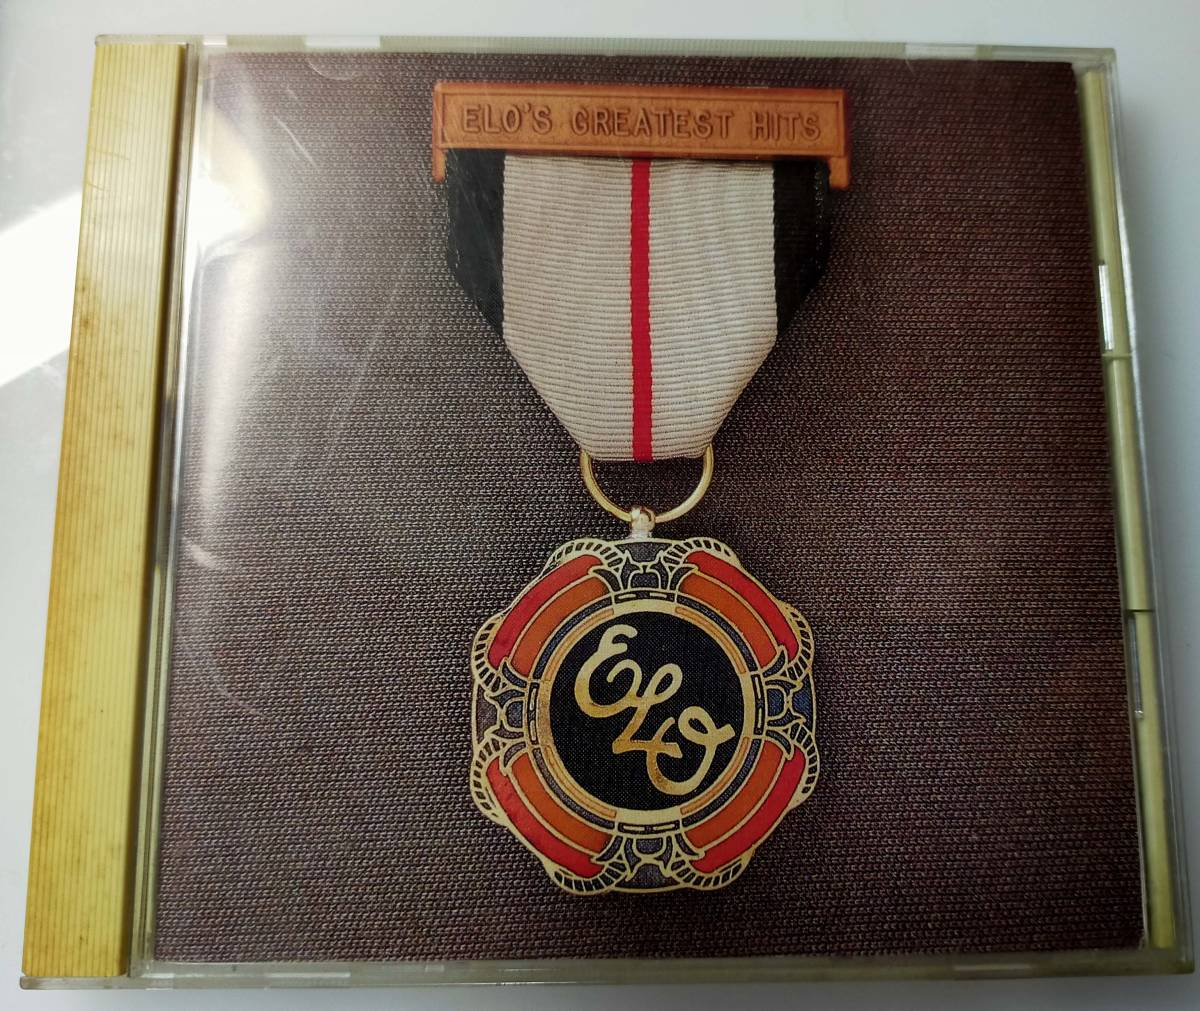 CD Electric light orchestra ELO's greatest hits 日本盤